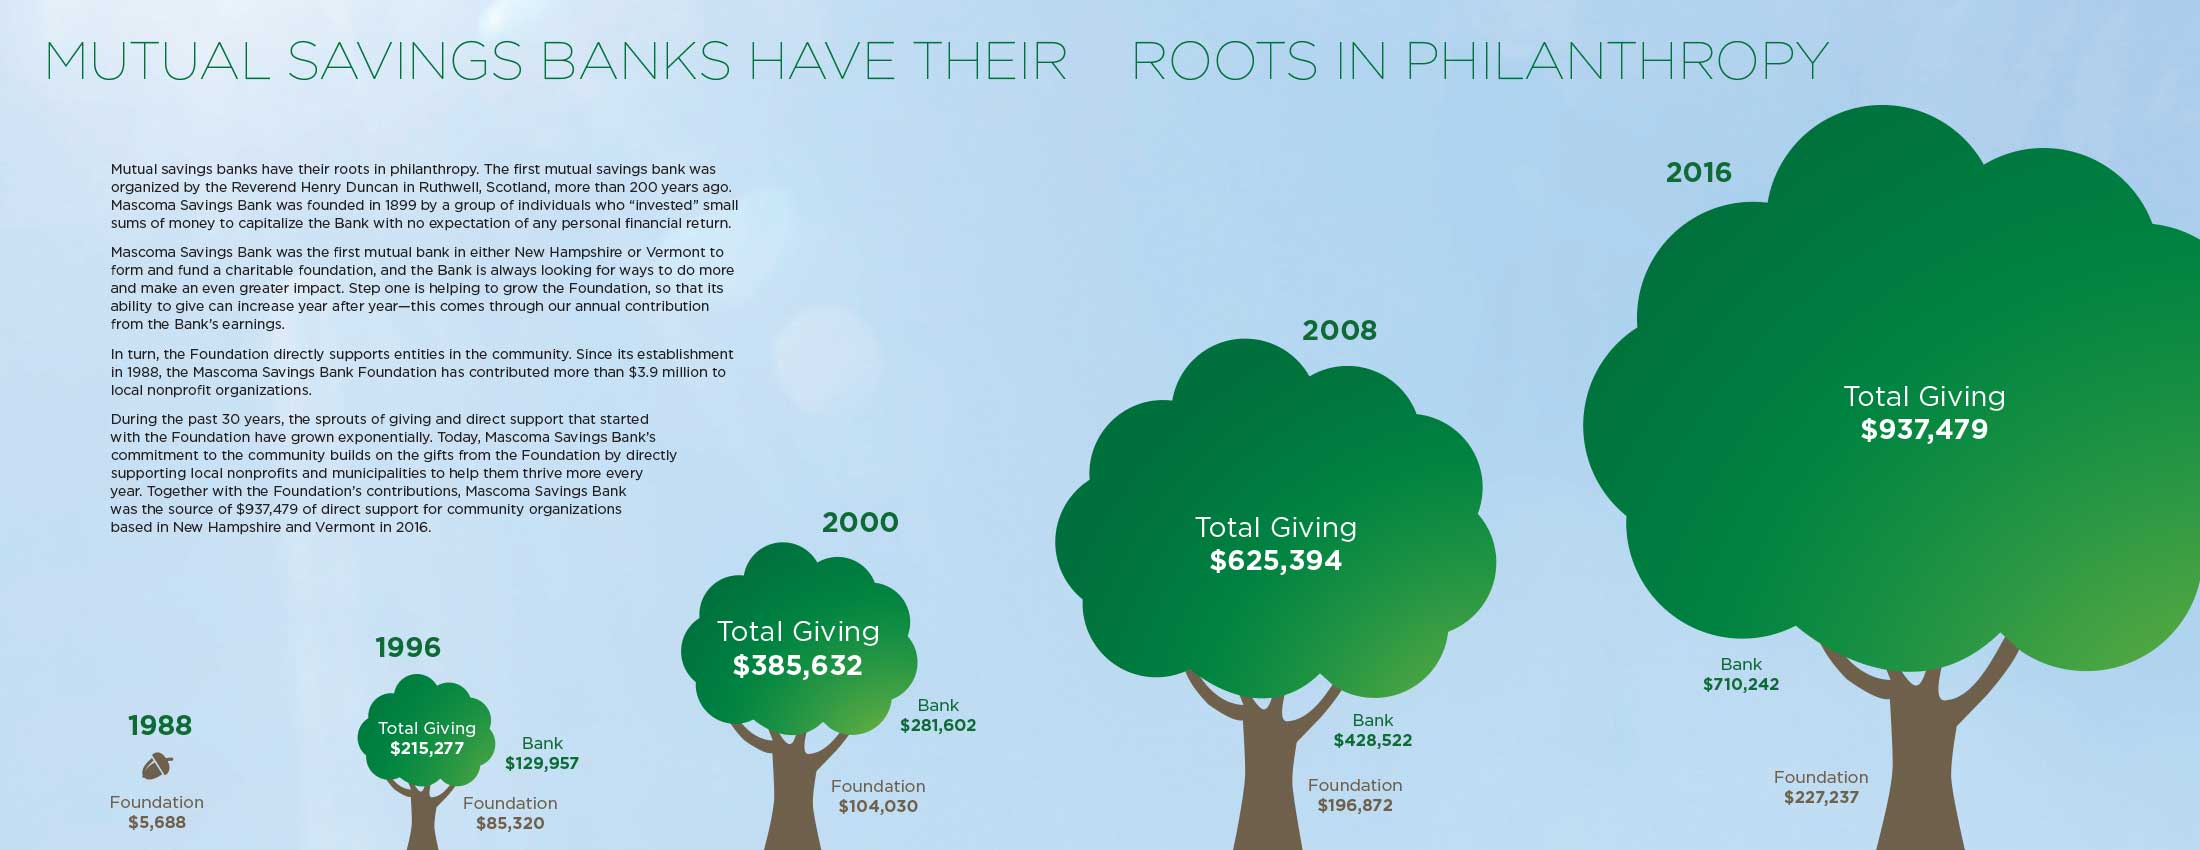 Tree growth diagram showing Mascoma Savings Bank's philanthropic efforts. In 2016 total contributions were $937,479.